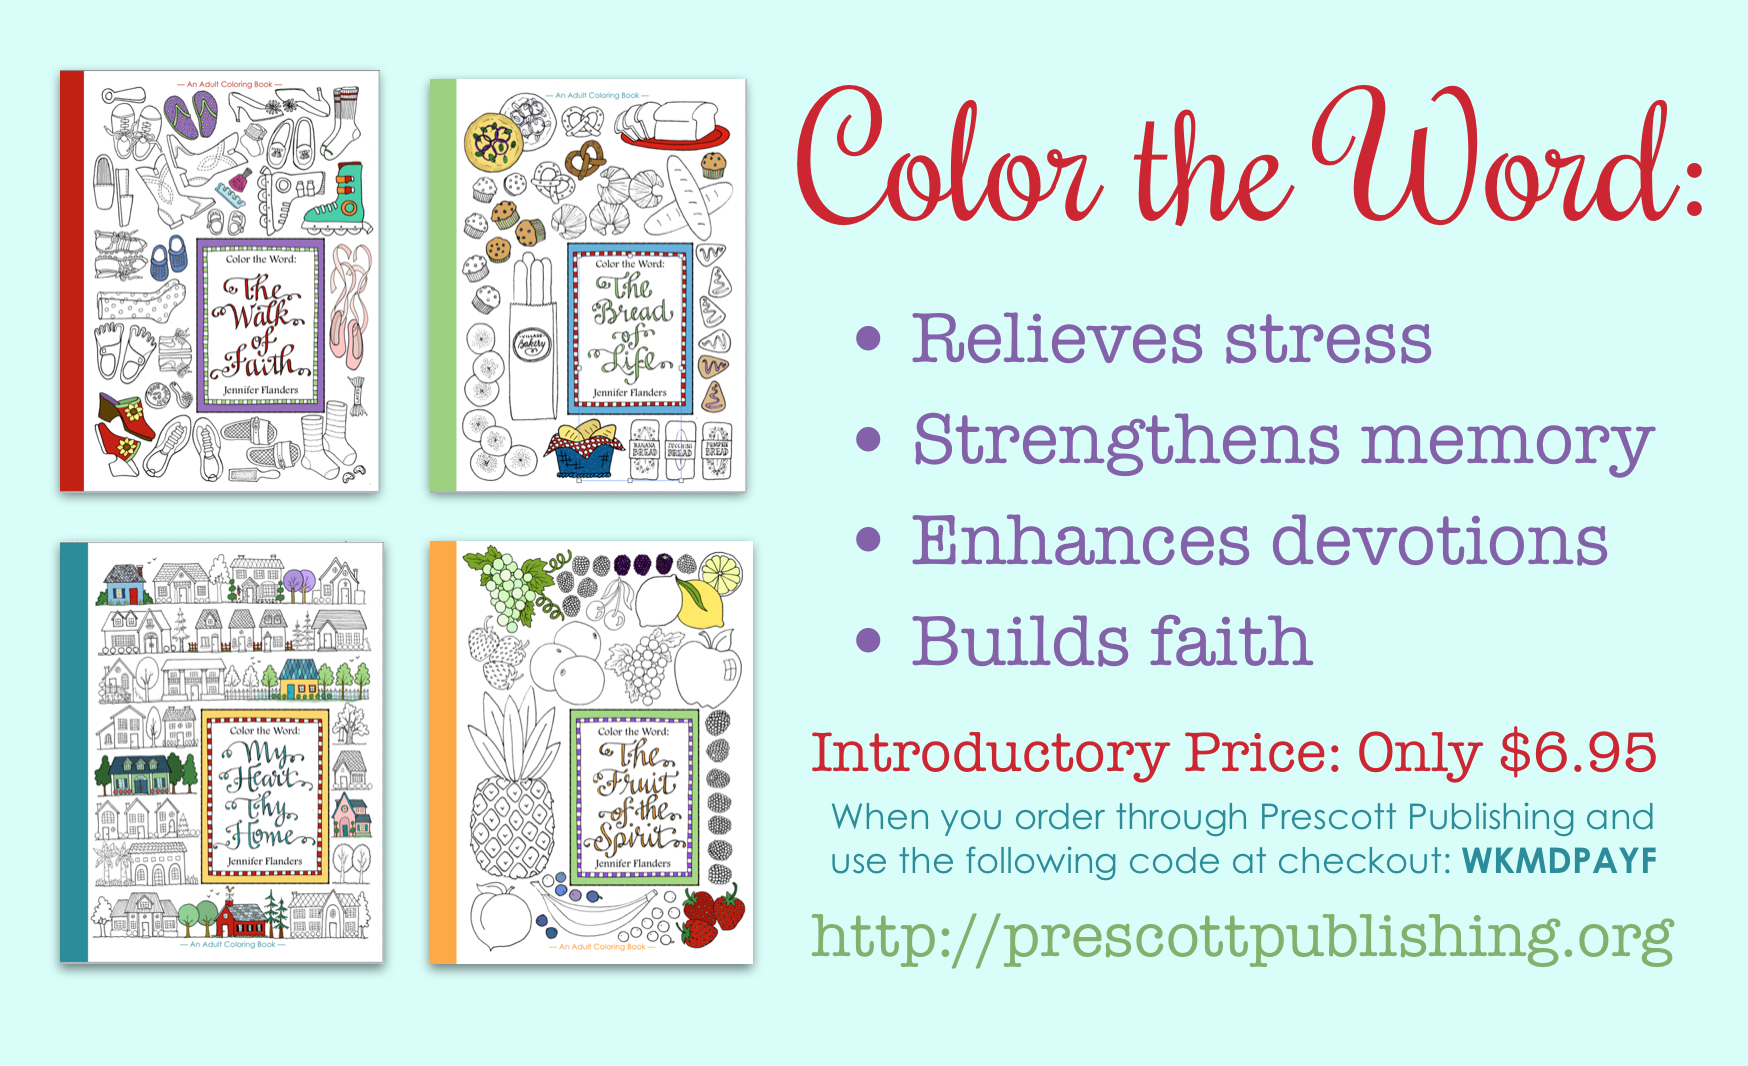 Color the Word - coloring books for adults - Get them at a low, special introductory price for a limited time!